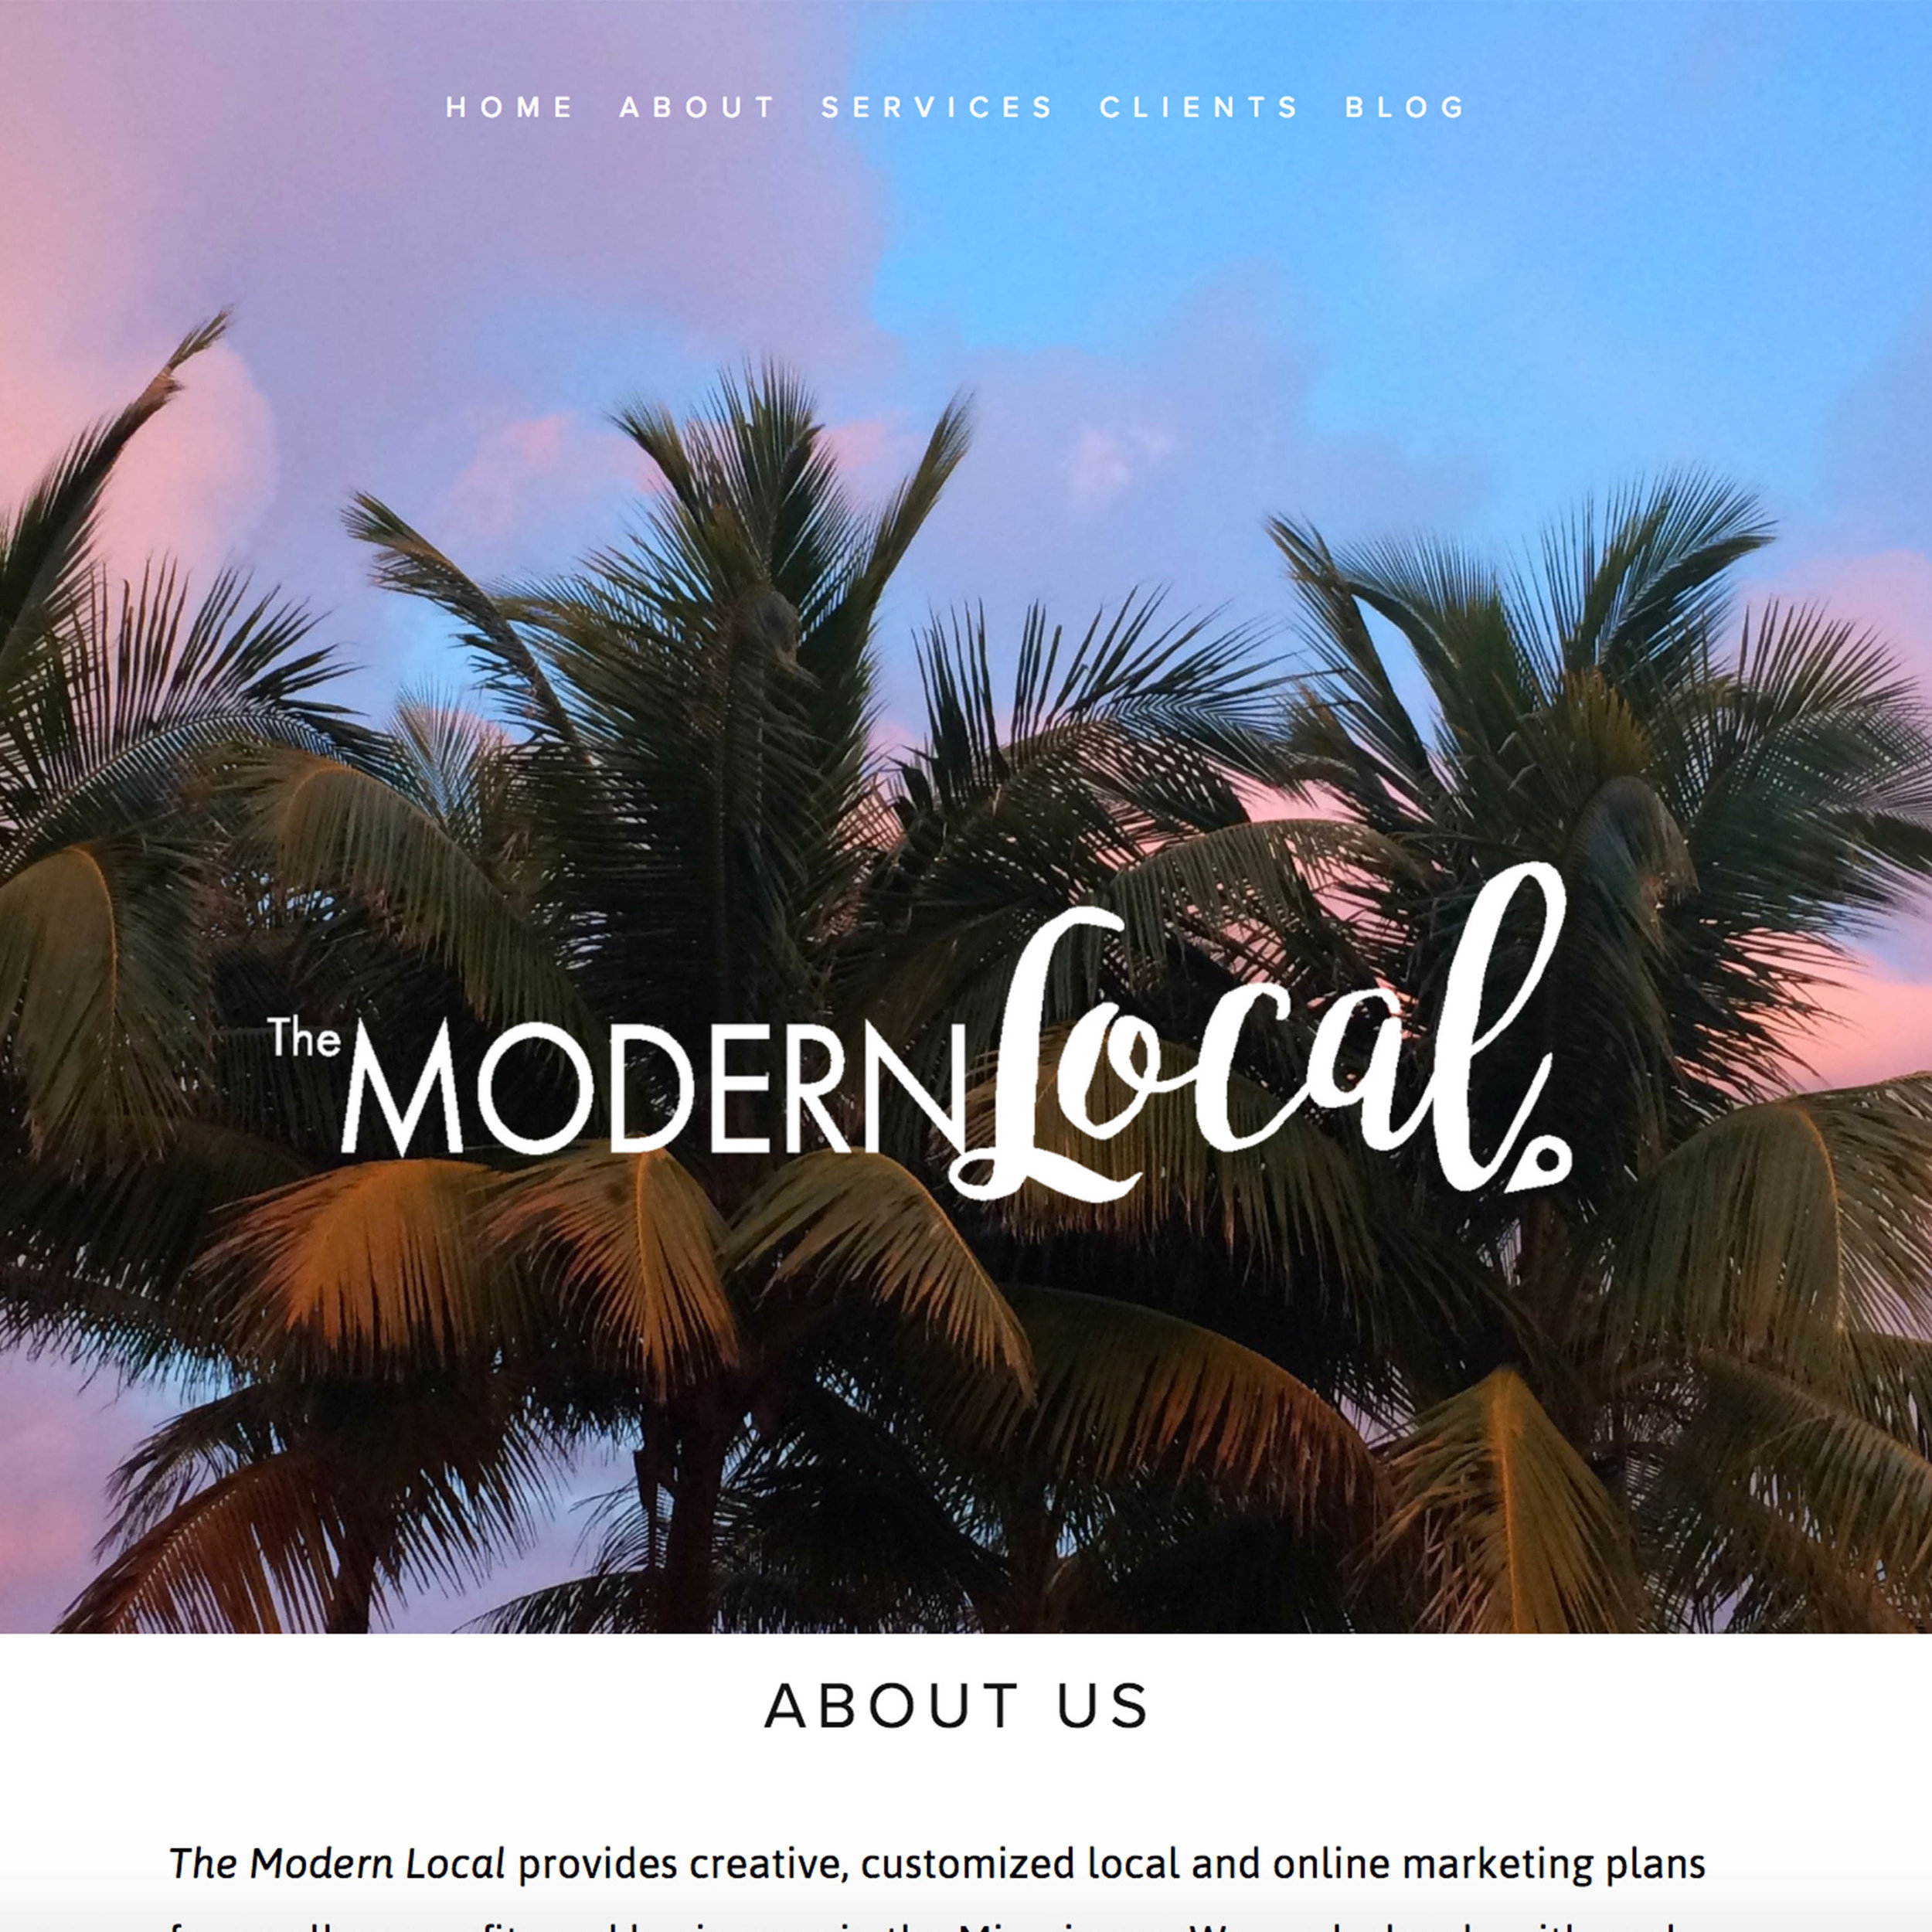 The Modern Local